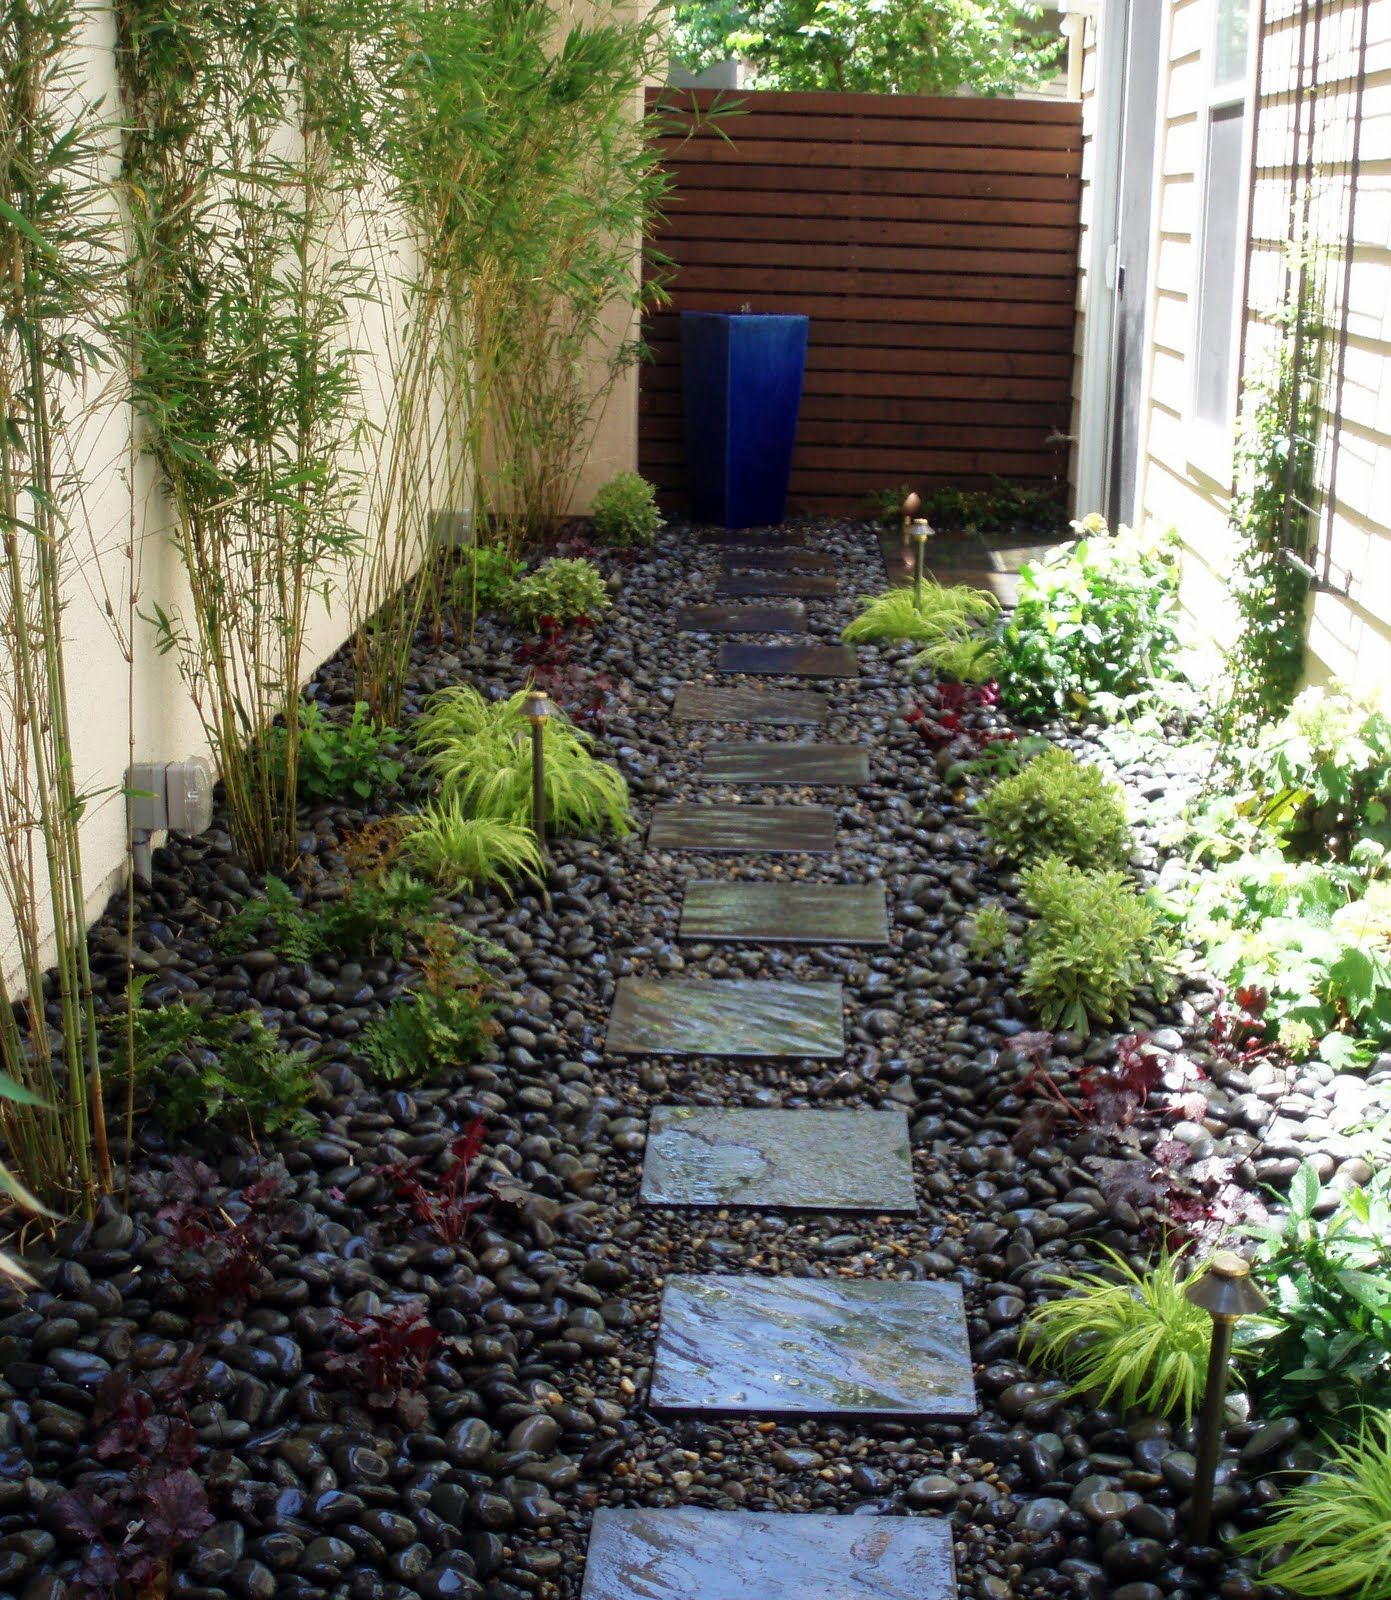 Garden Ideas For Narrow Spaces small yard landscaping ideas afrozepcom A Narrow Garden With An Eyecatching Blue Fountain As The Focal Point